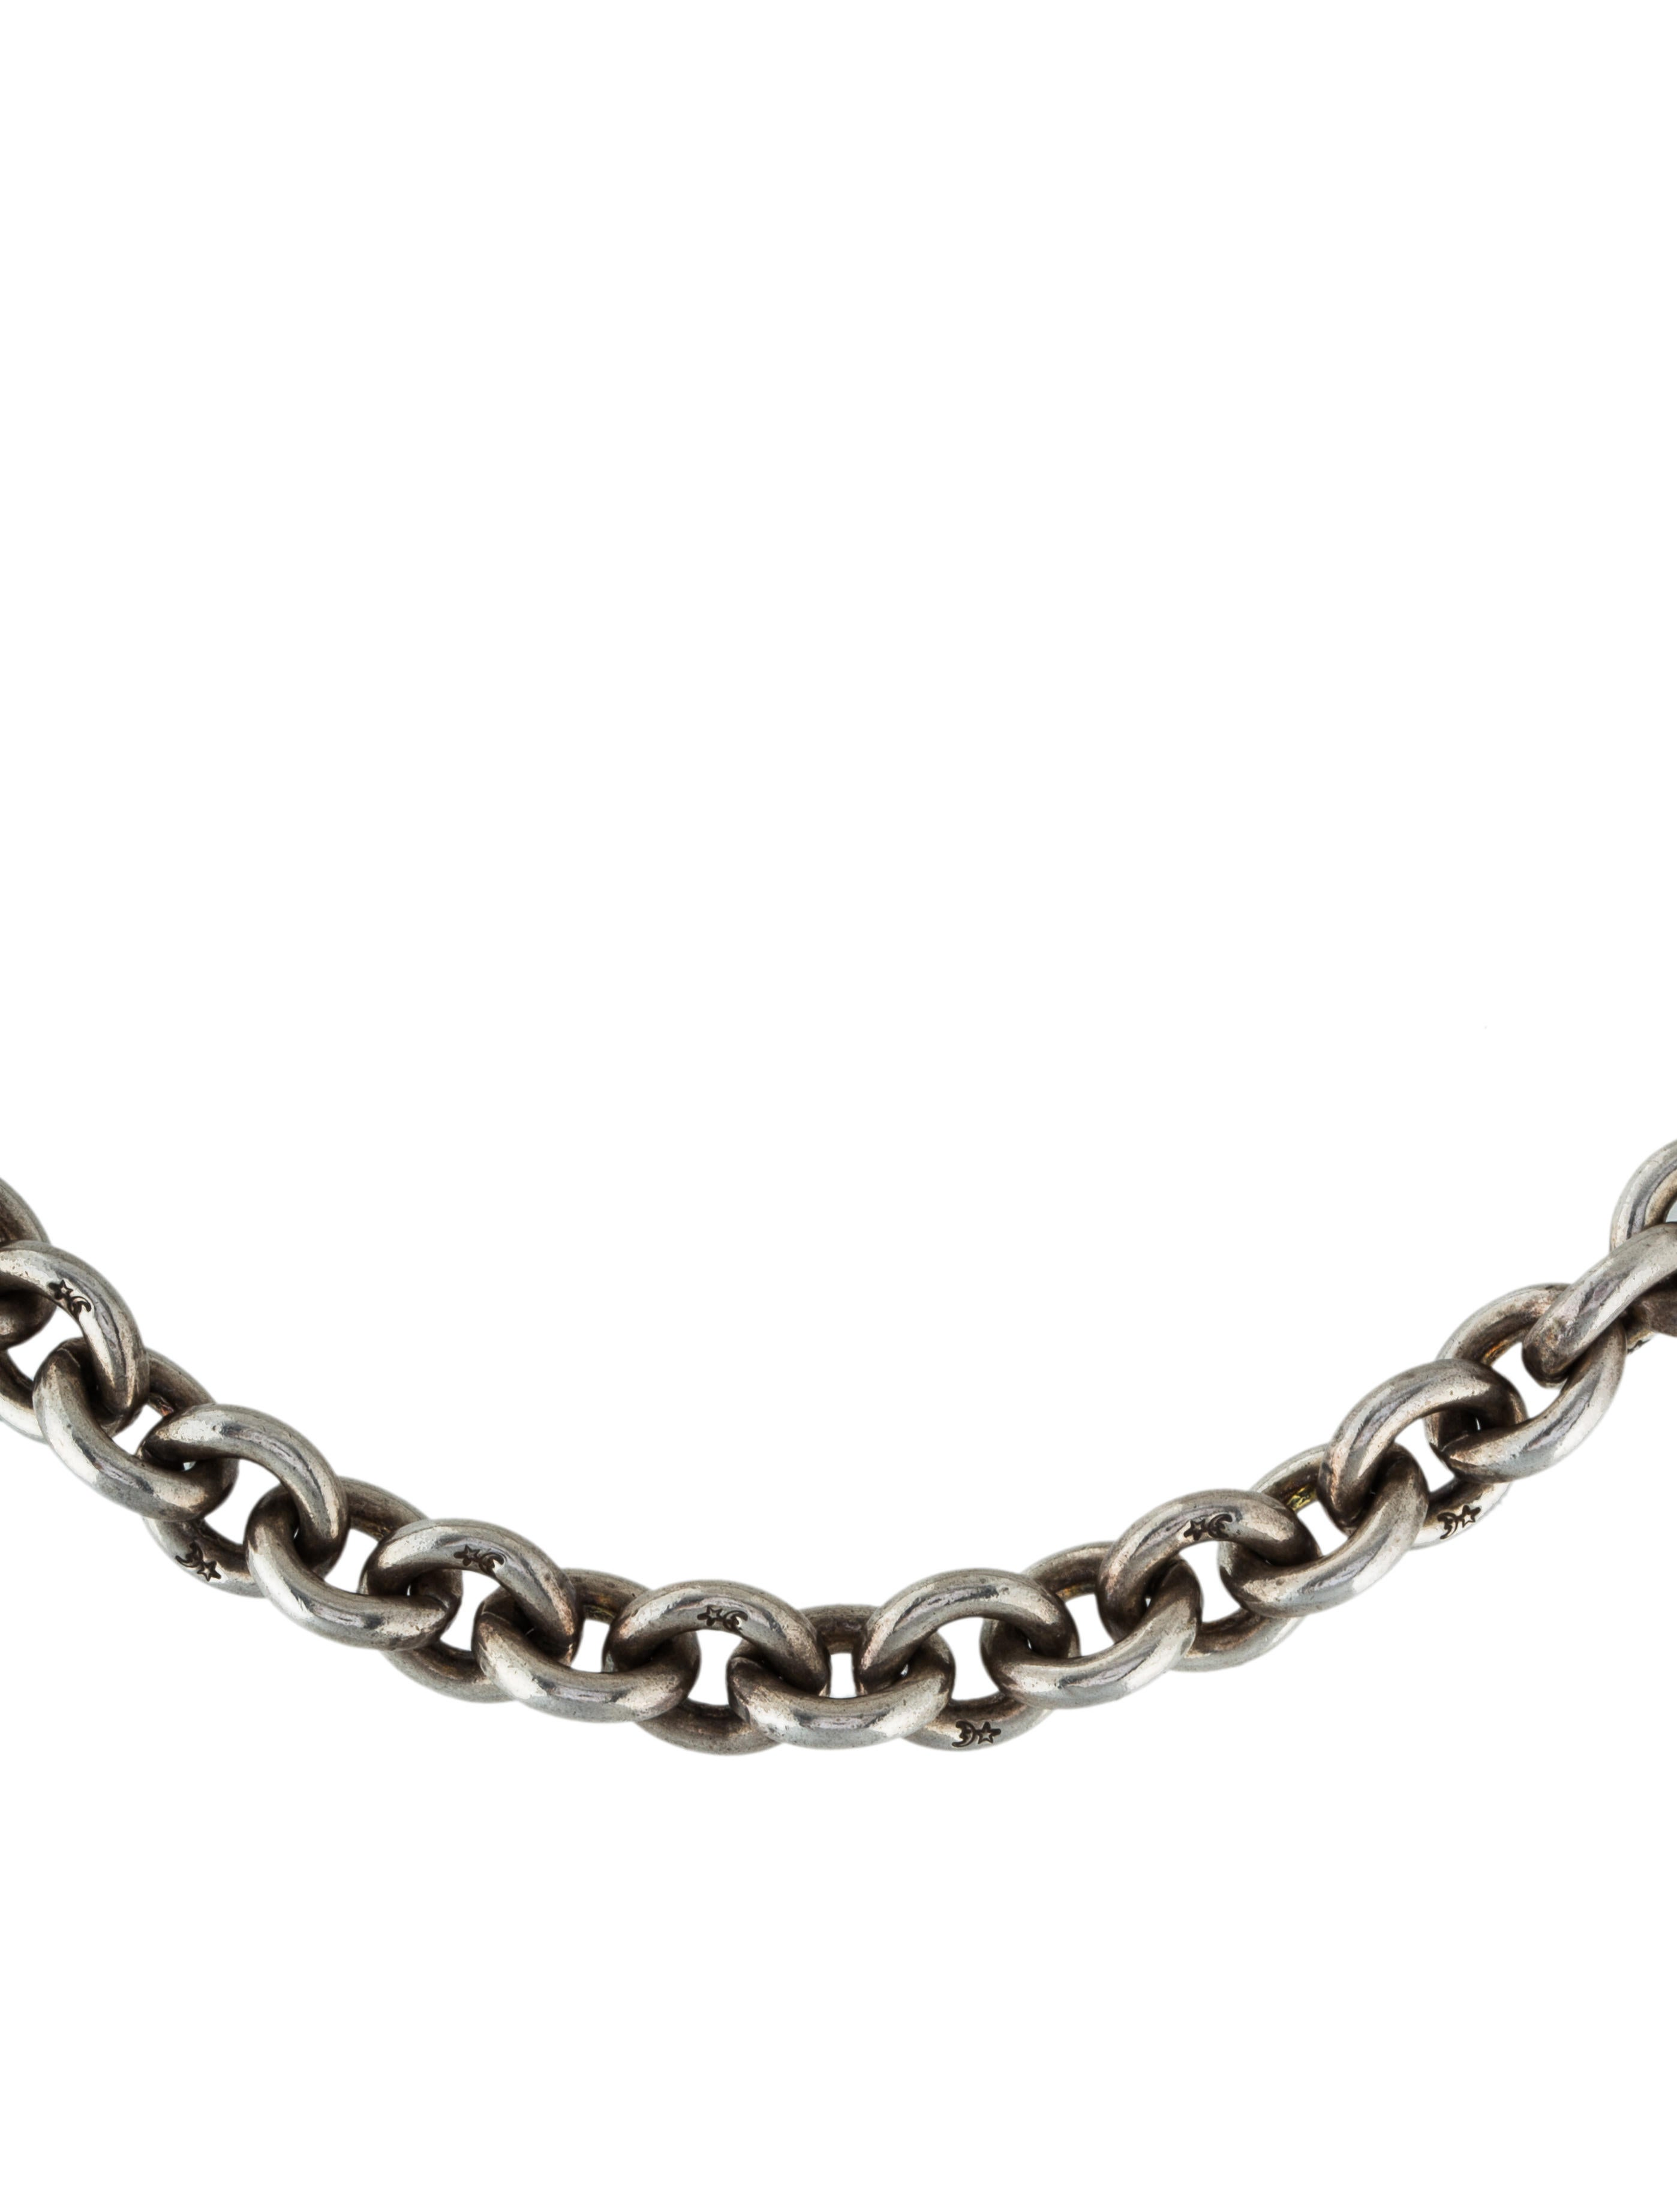 Barry kieselstein cord rolo chain necklace necklaces for Barry kieselstein cord jewelry